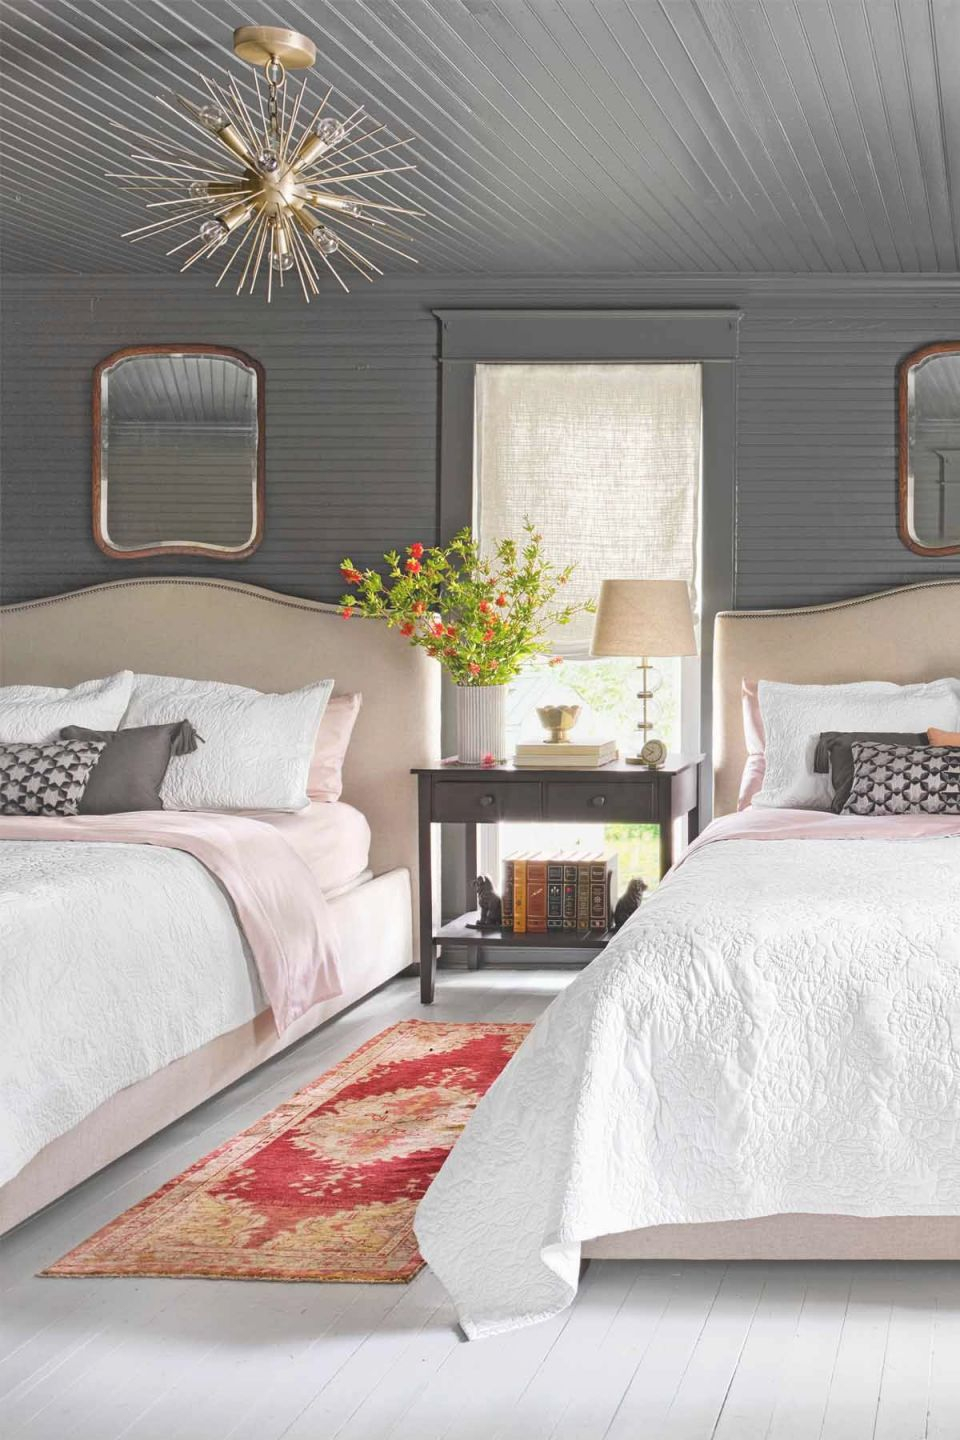 39 Guest Bedroom Pictures – Decor Ideas For Guest Rooms pertaining to Awesome Twin Bedroom Decorating Ideas